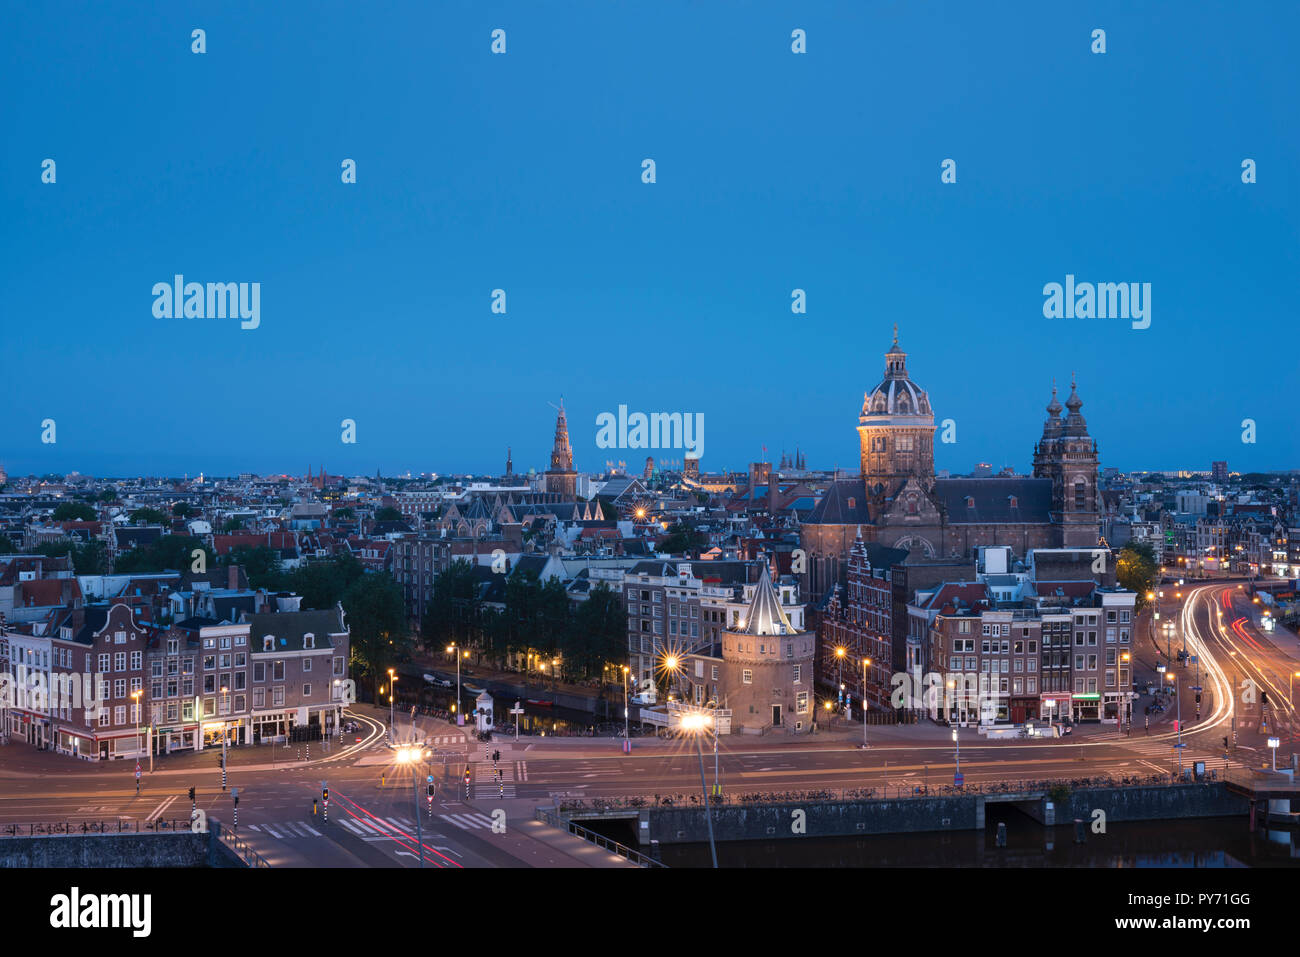 Early morning in Amsterdam, Netherlands, skyline with basilica Saint Nicholas (Nicolaaskerk) Stock Photo